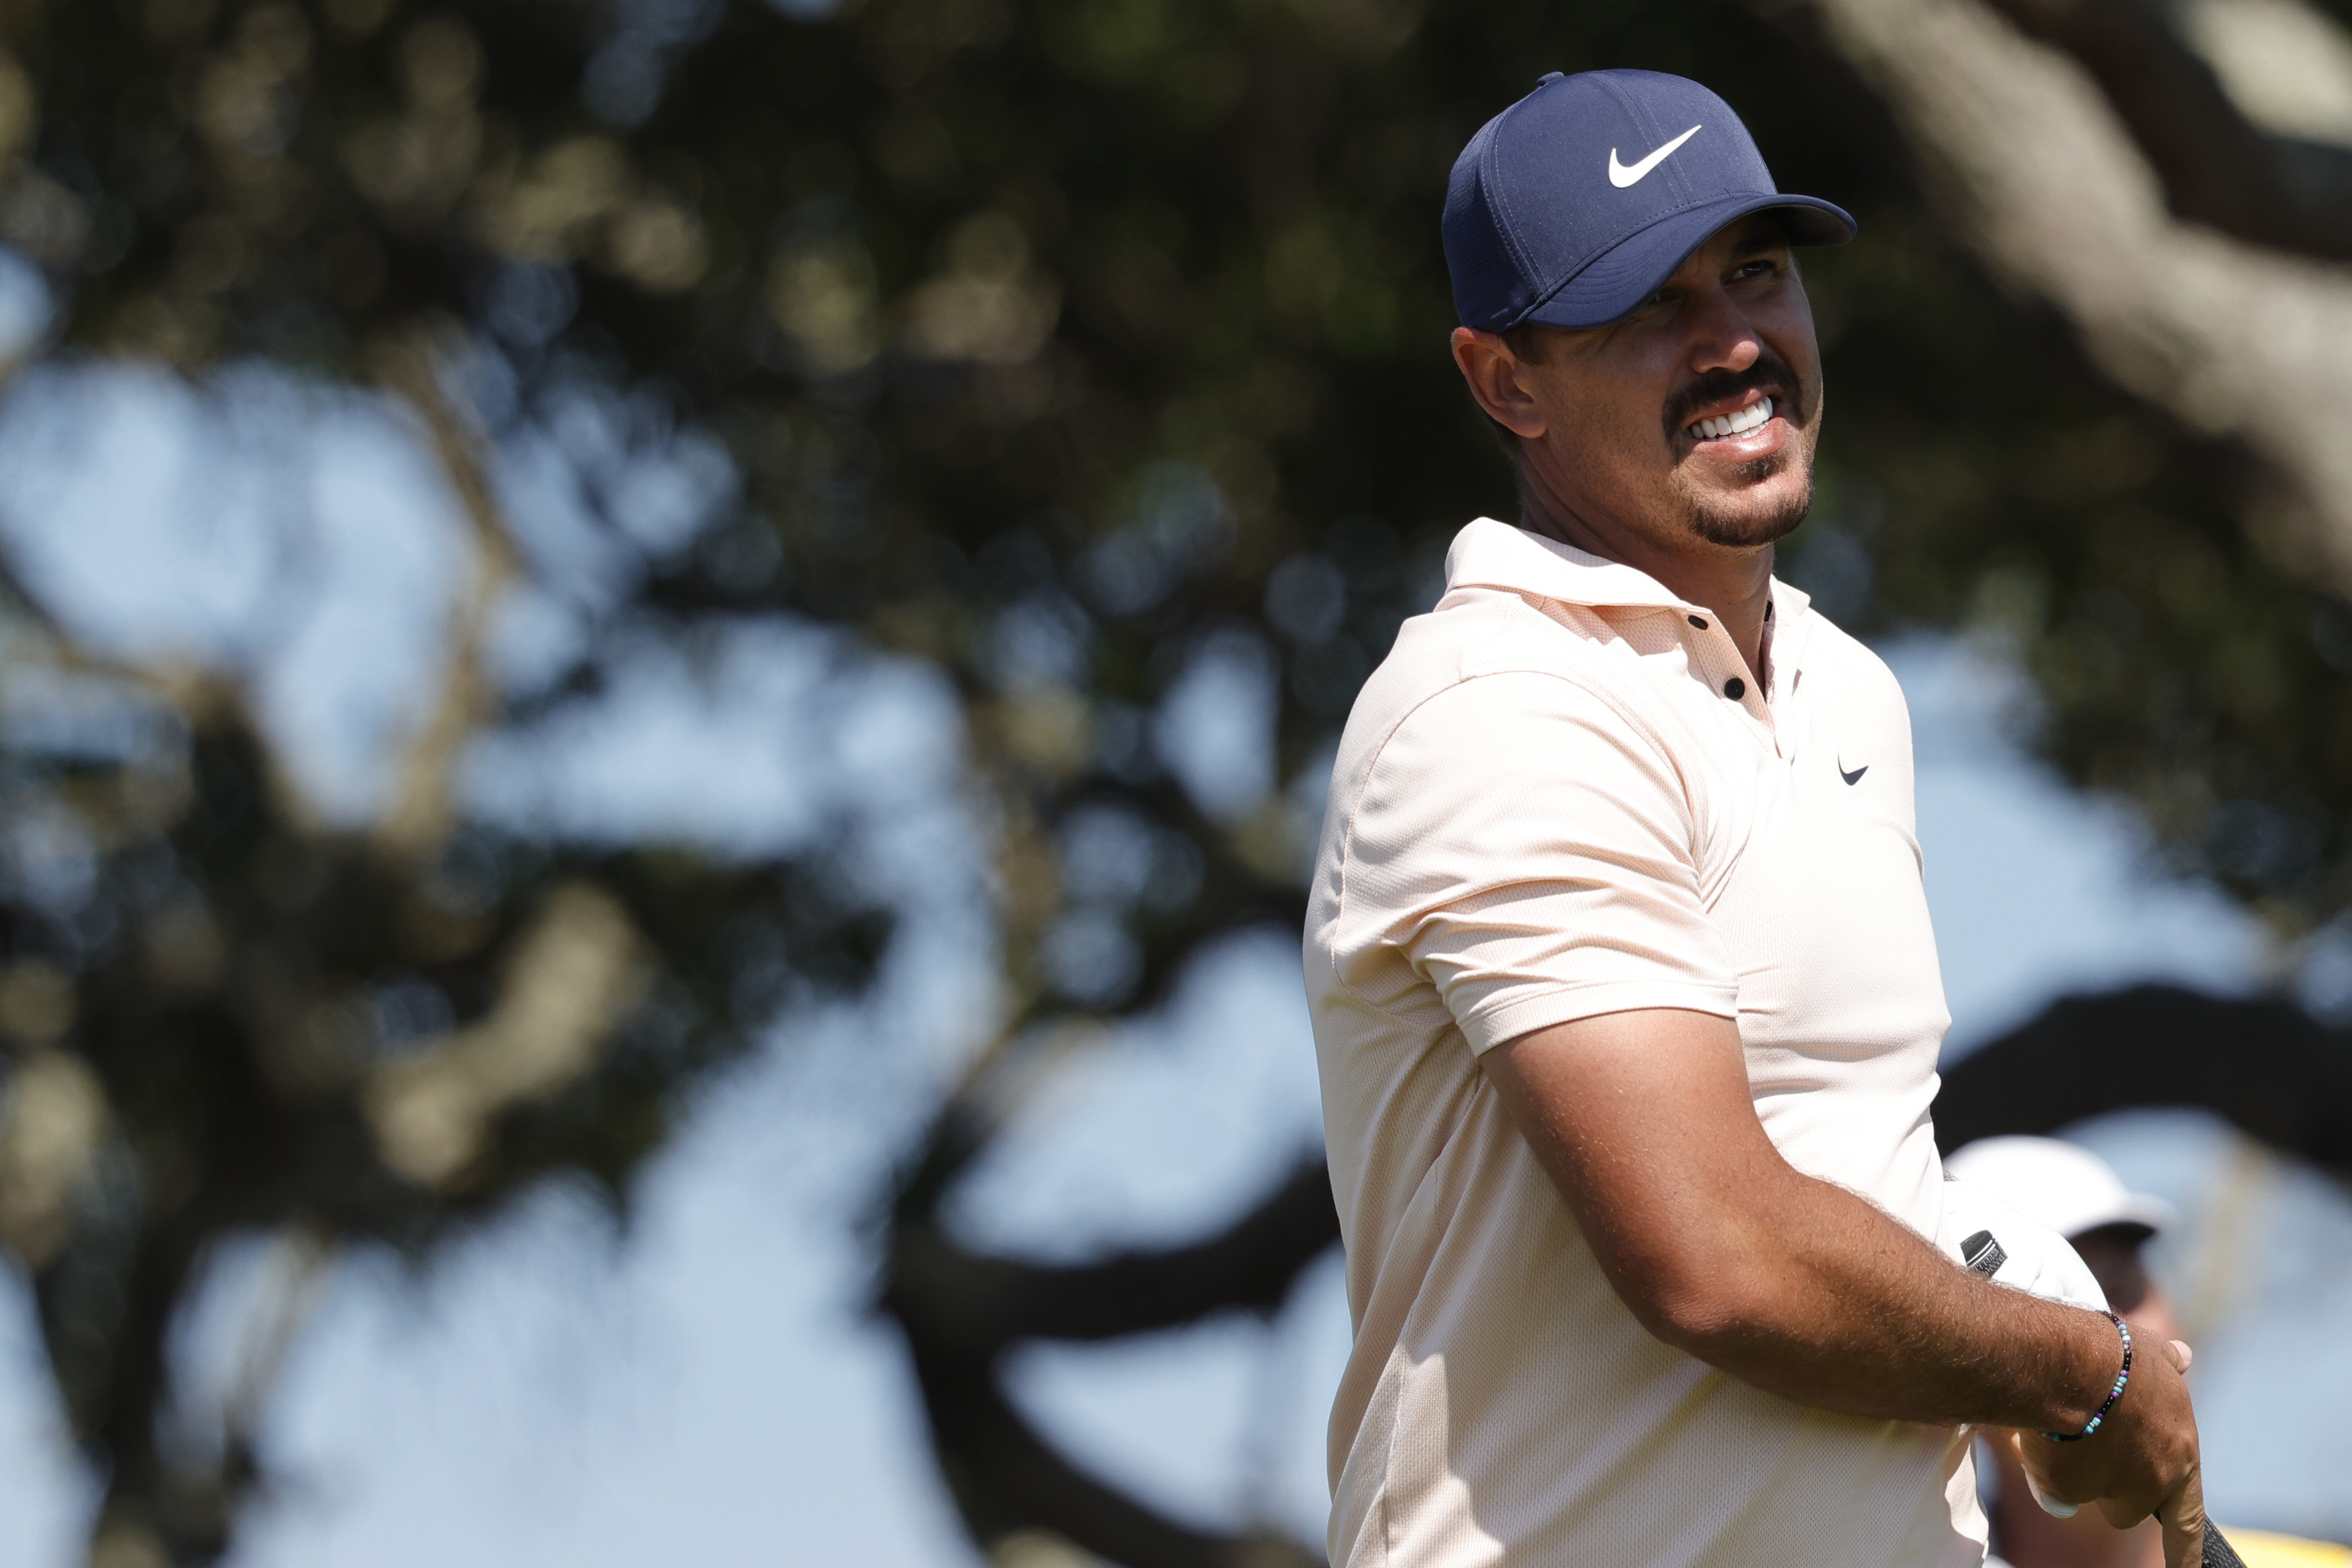 May 23, 2021; Kiawah Island, South Carolina, USA; Brooks Koepka reacts to his tee shot on the seventh hole during the final round of the PGA Championship golf tournament. Mandatory Credit: Geoff Burke-USA TODAY Sports